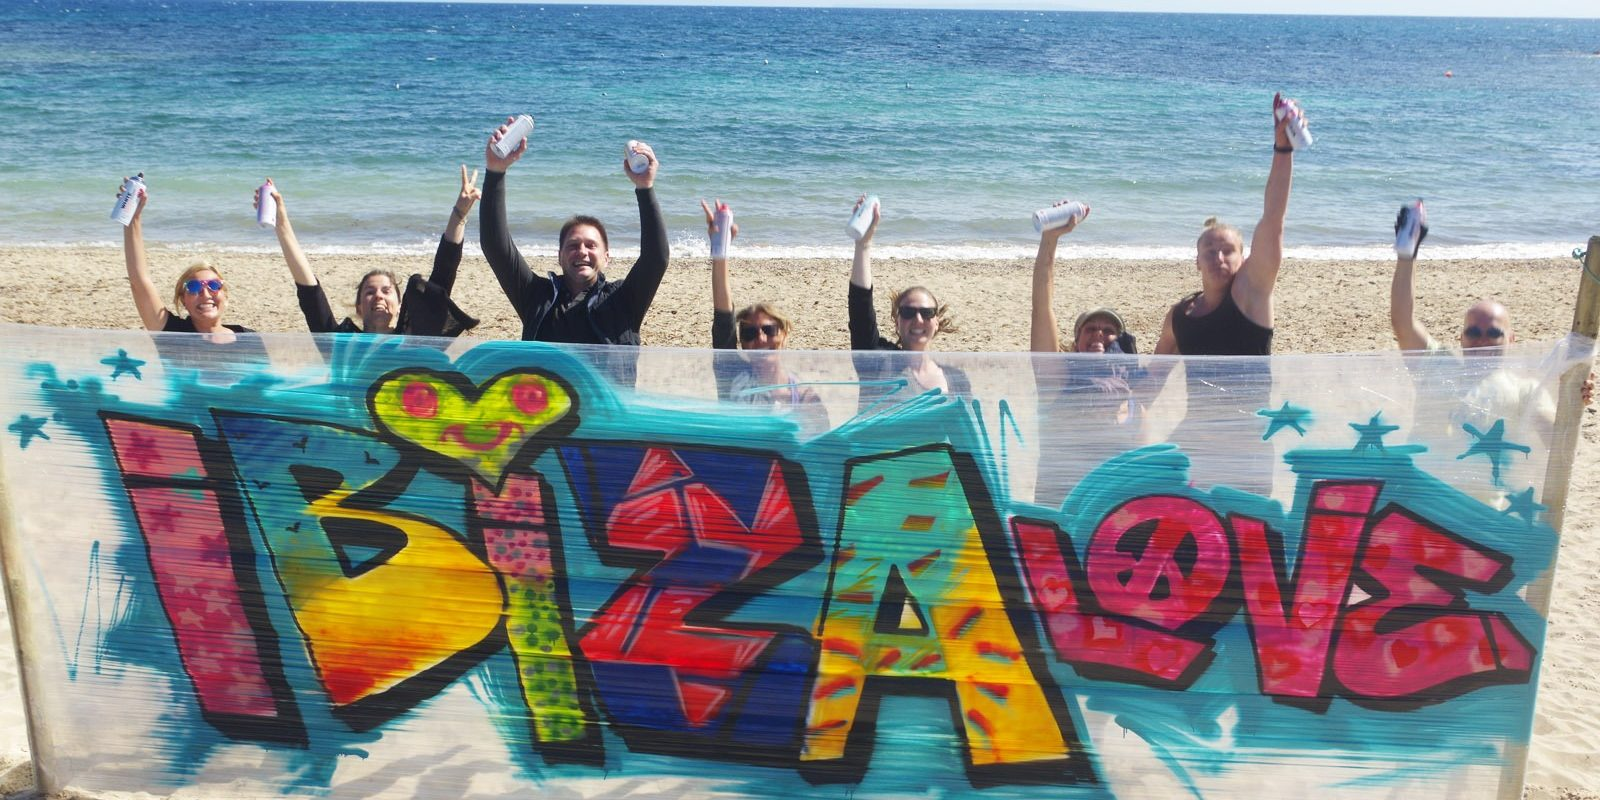 graffitiauftrag-graffitikuenstler-graffitiworkshop-artmos4-ibiza-workshop-event-graffiti